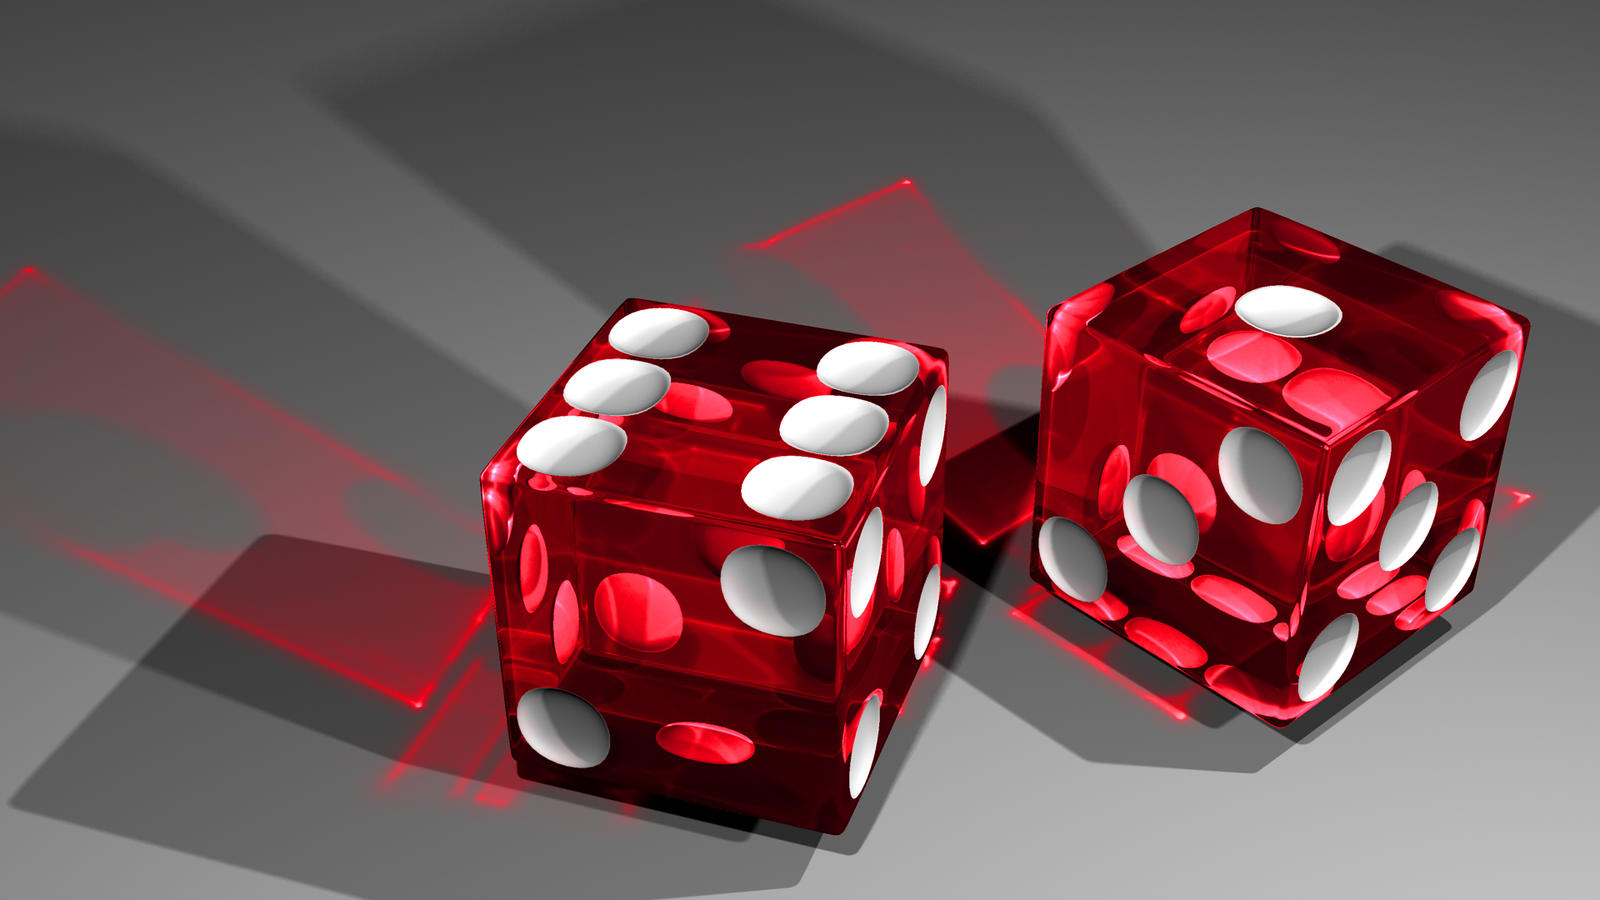 Digital Dice by TylerXy